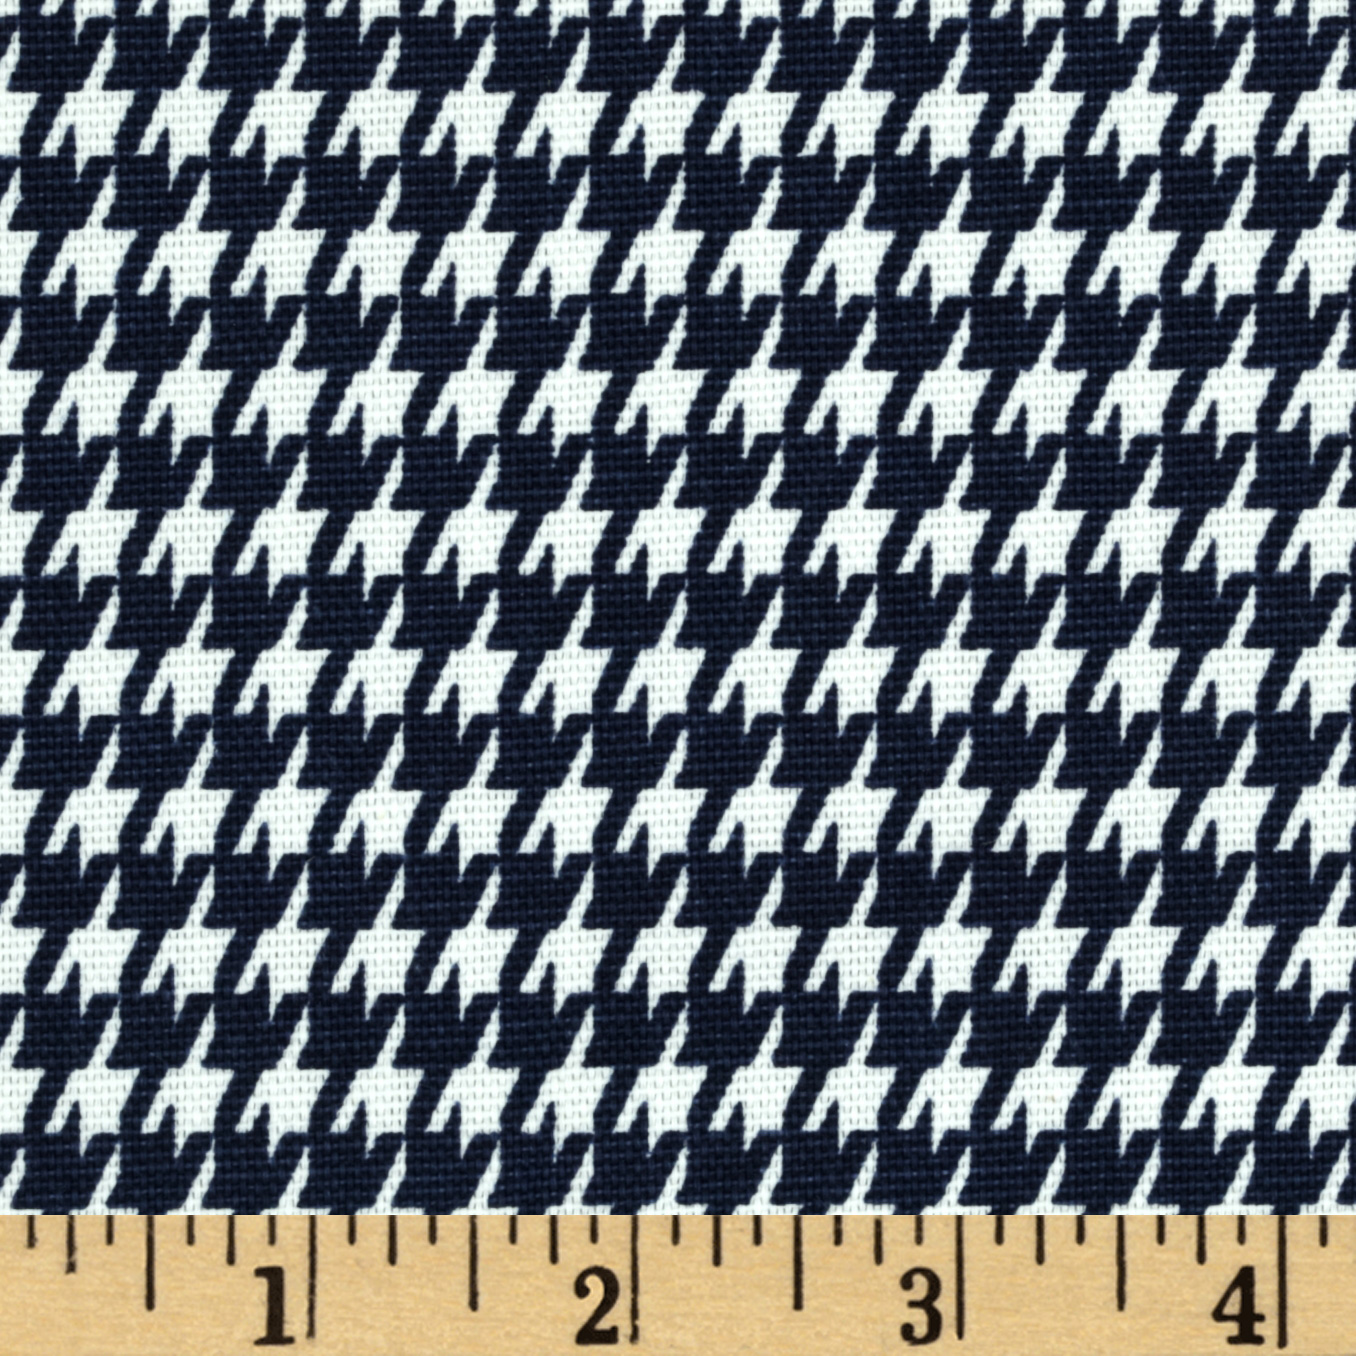 Premier Prints Houndstooth Navy Blue/White